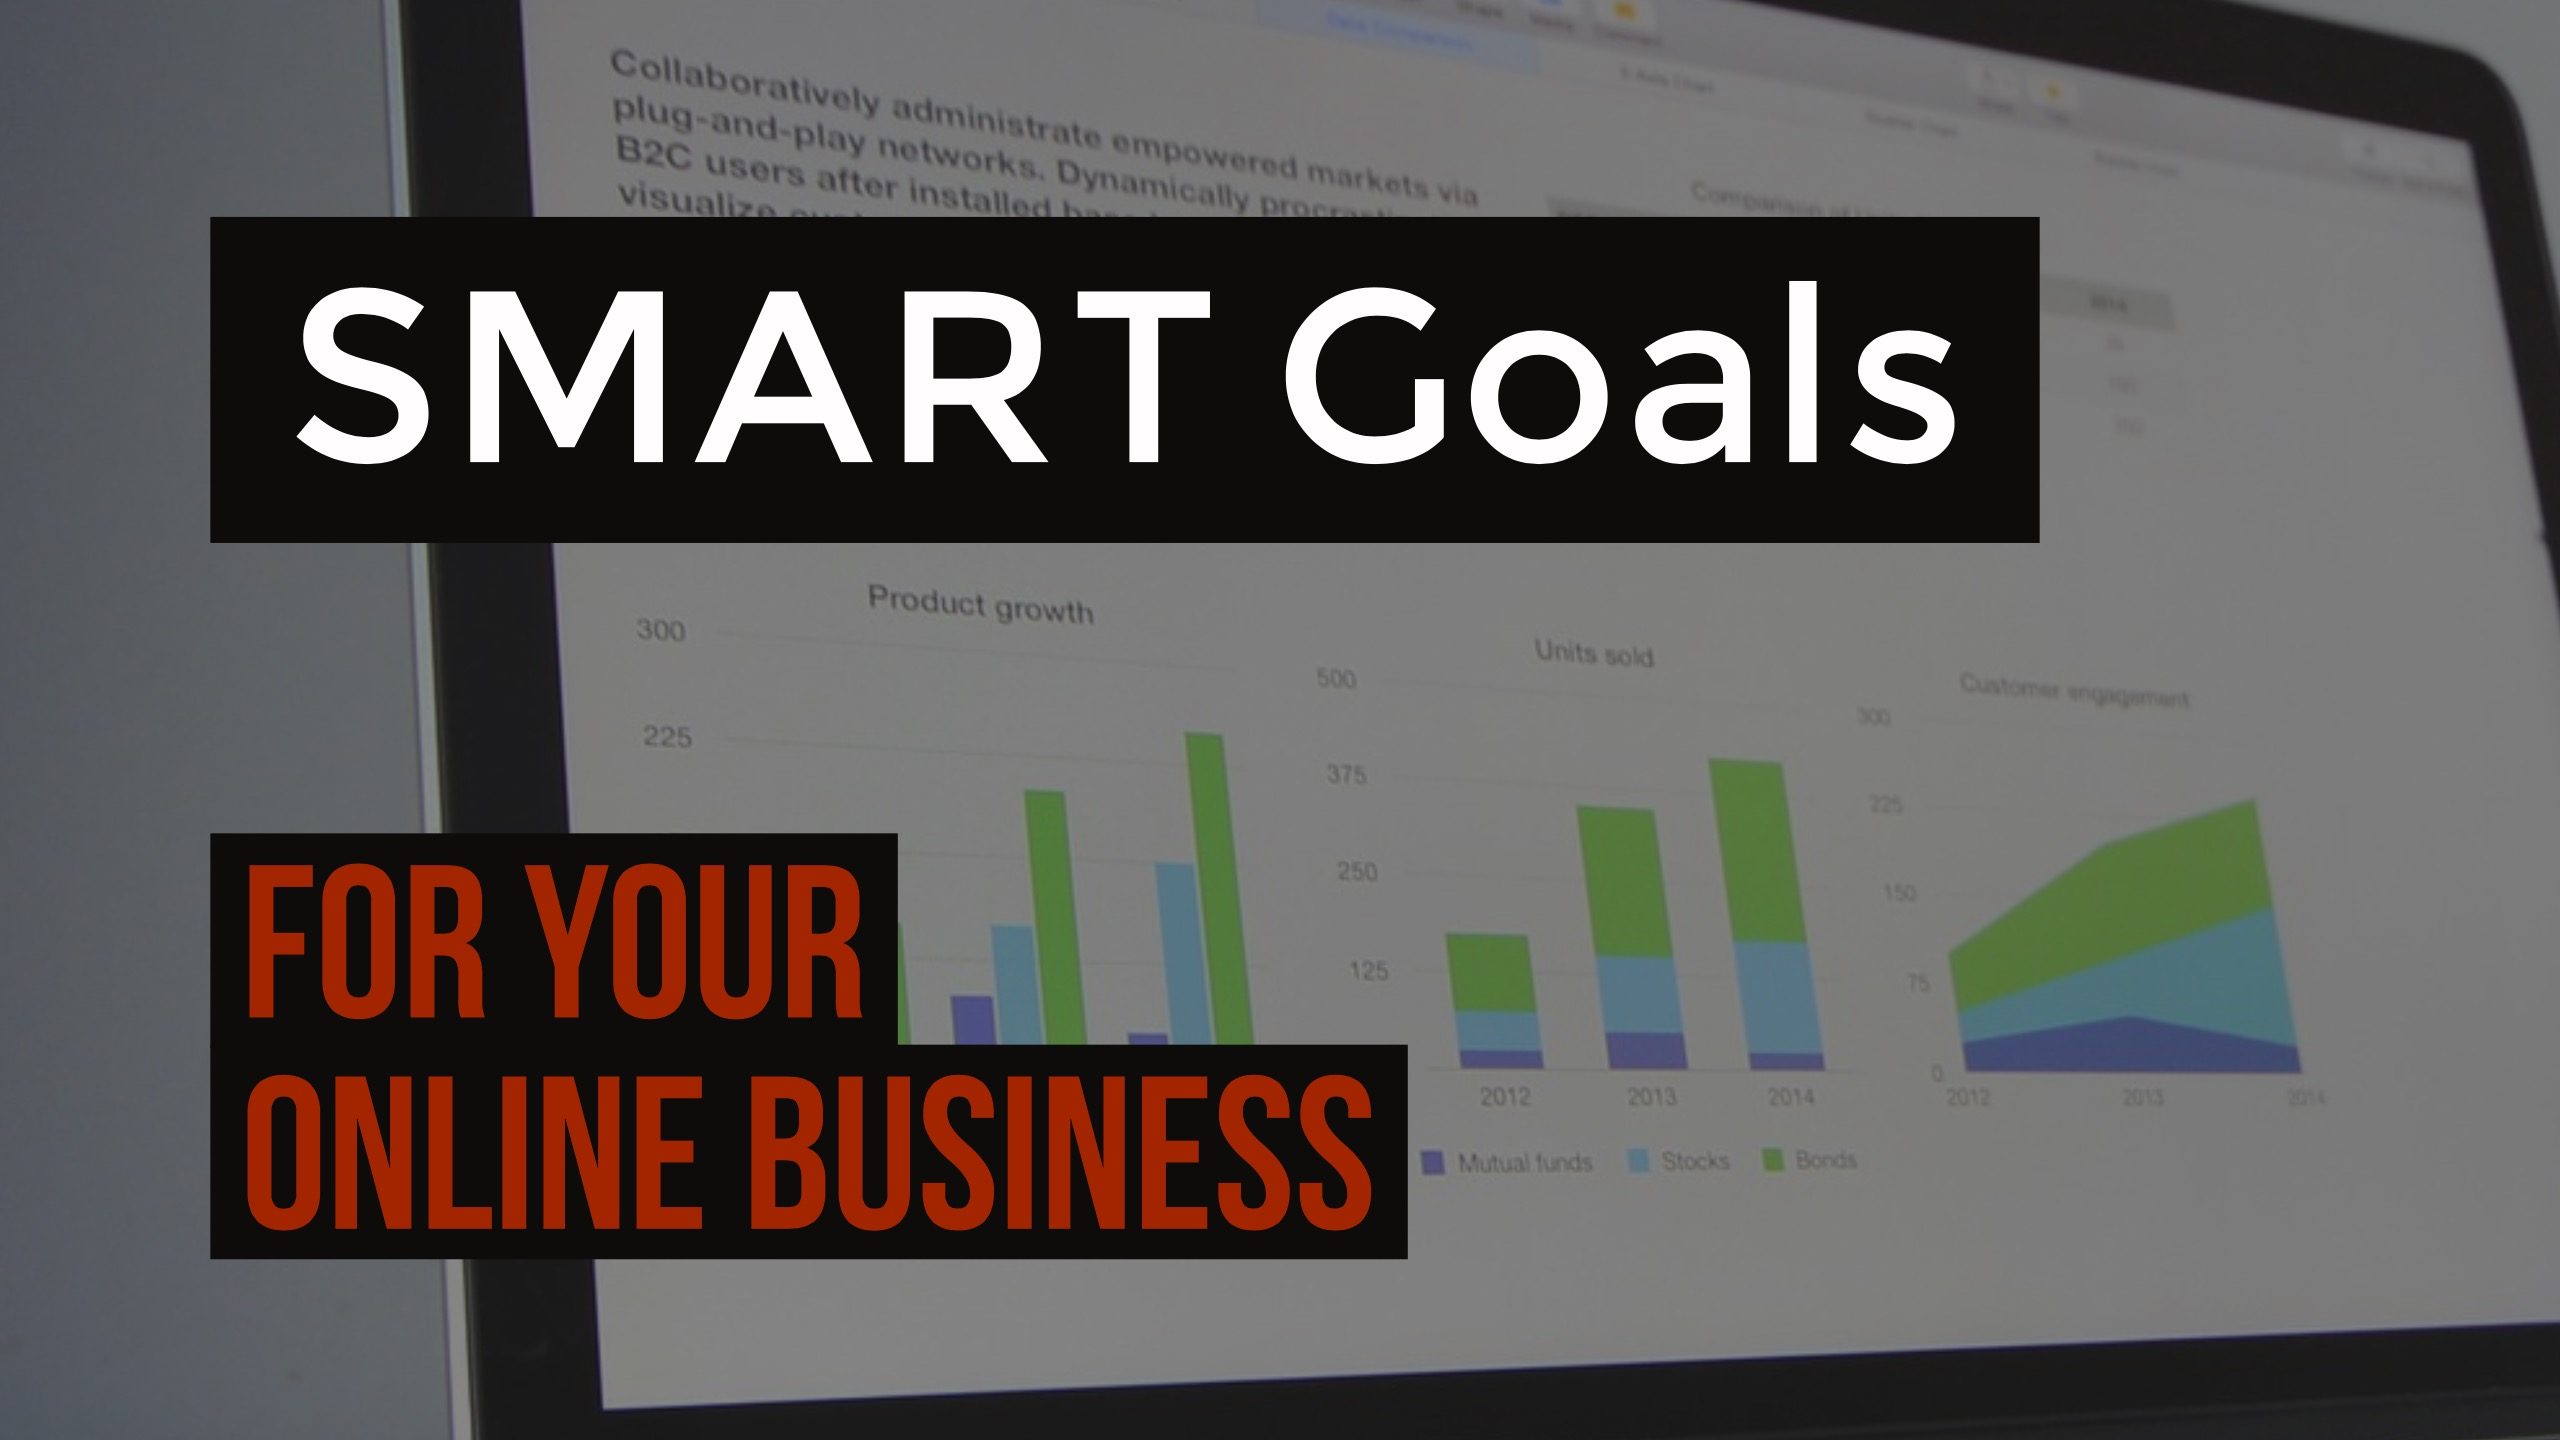 SMART Goals for Online Business and Digital Marketing